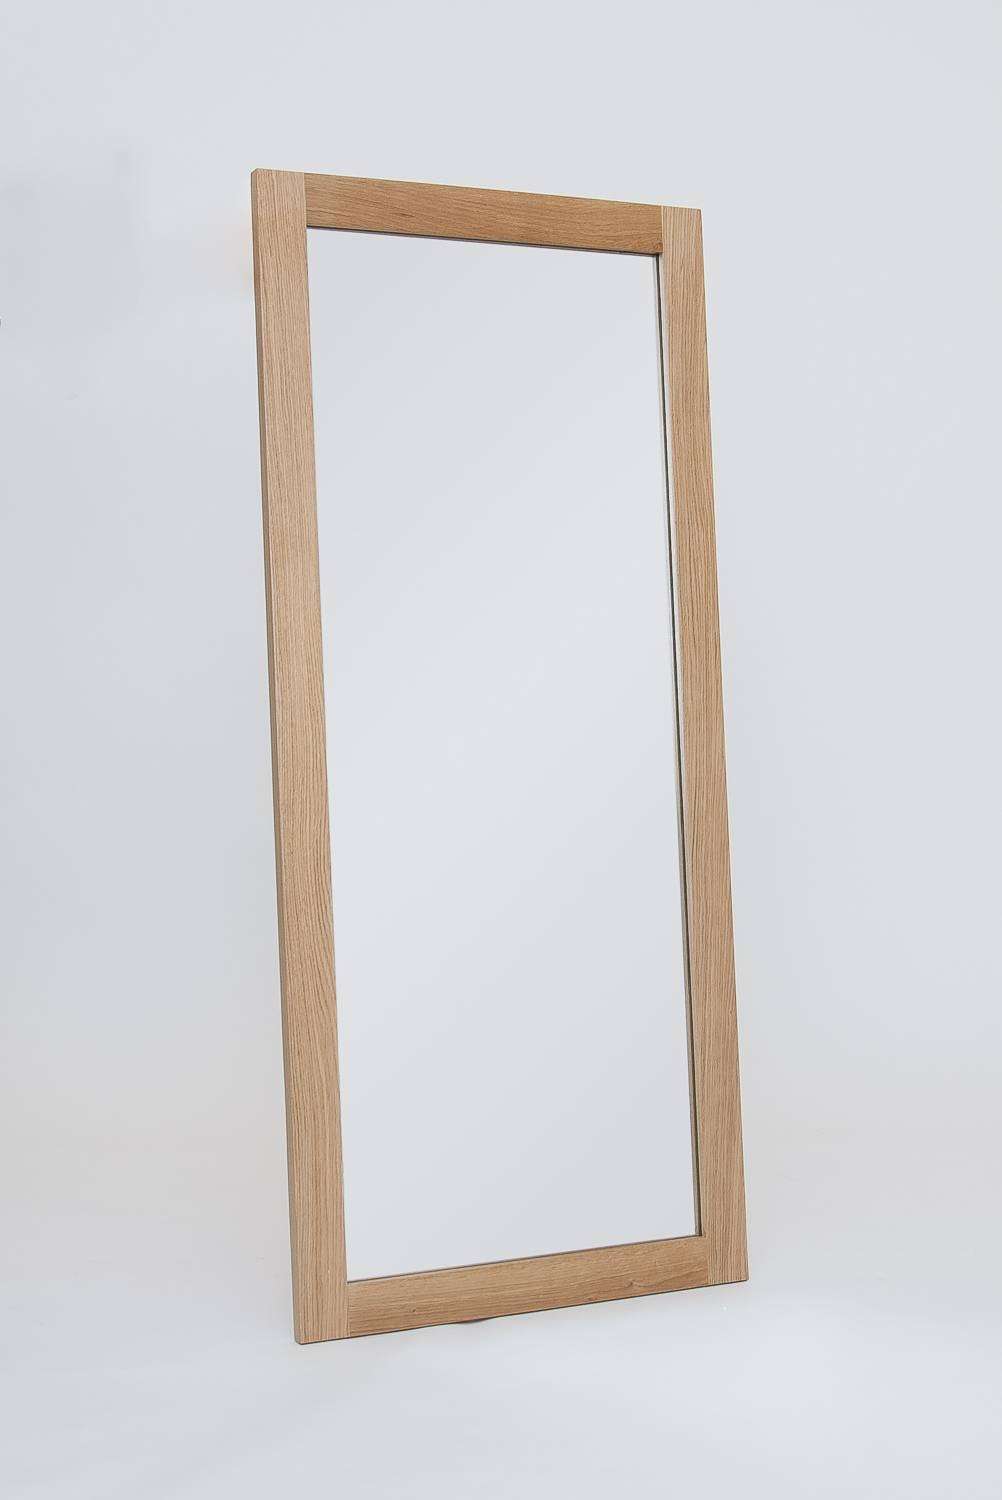 Large Oak Mirror - Hereford Oak | Oak Furniture Solutions with regard to Large Oak Mirrors (Image 8 of 25)